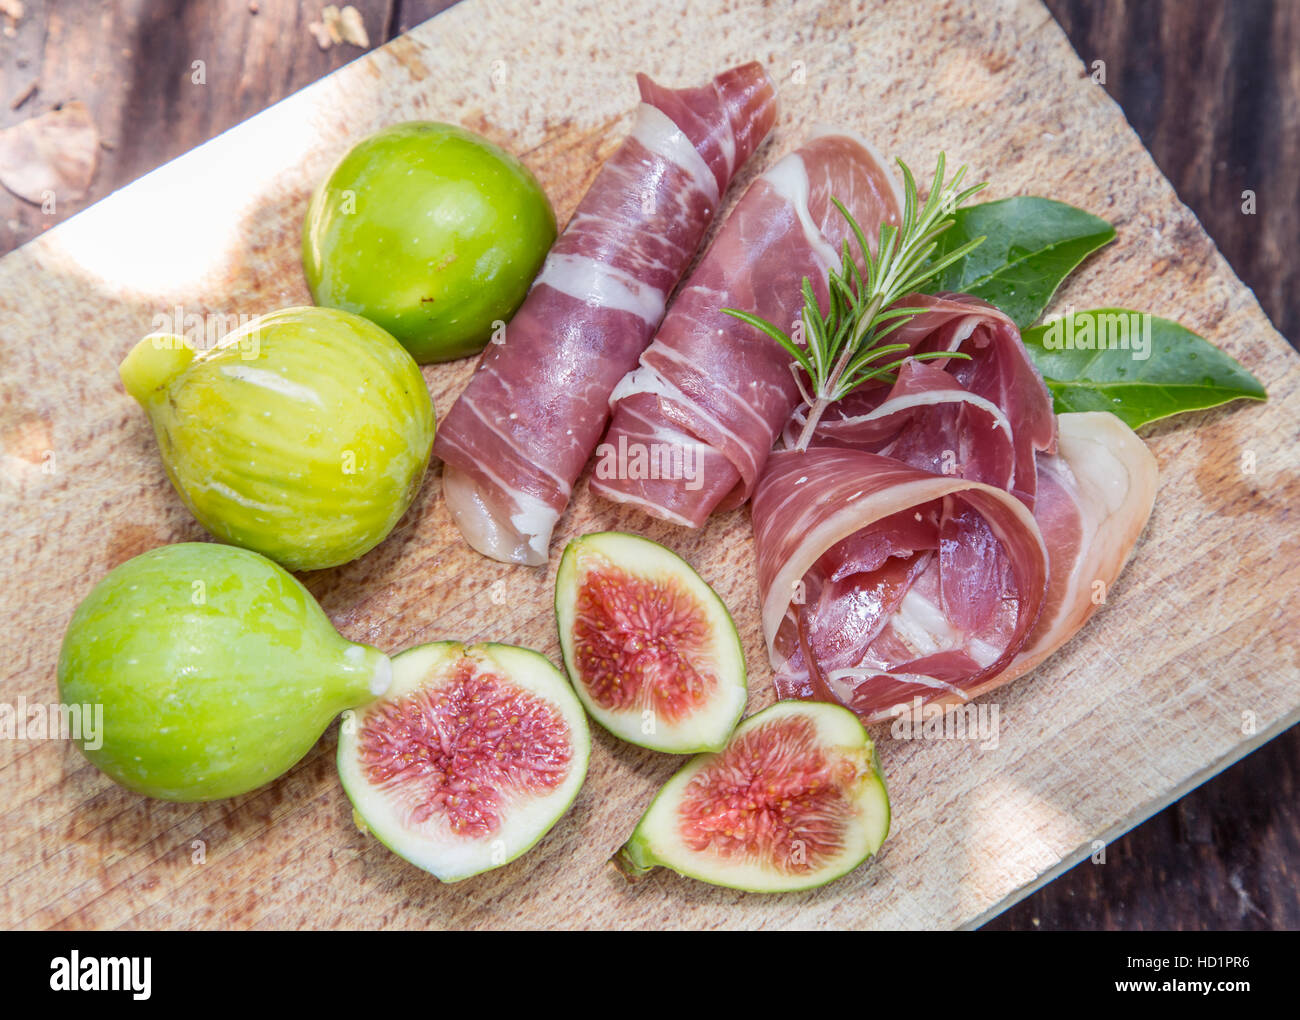 Ripe fig fruits and bacon or prosciutto. Food to accompany the drinks. - Stock Image